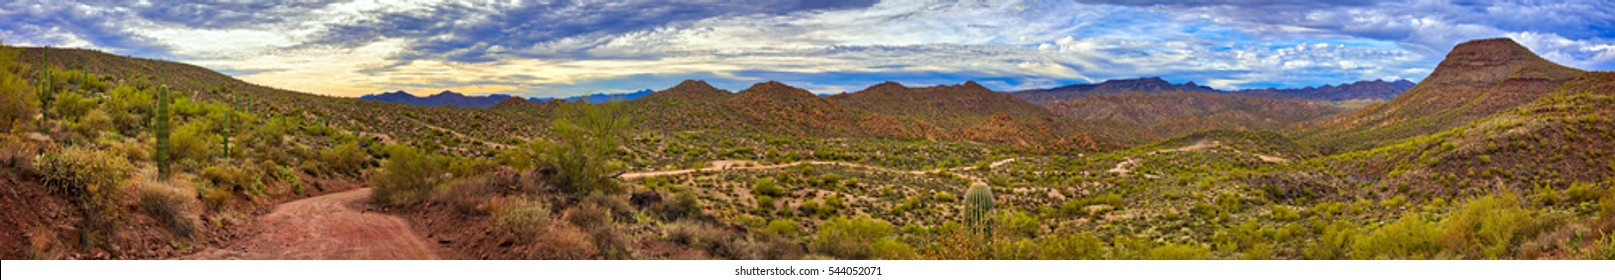 Panorama of Sonoran Desert near Phoenix, Arizona.